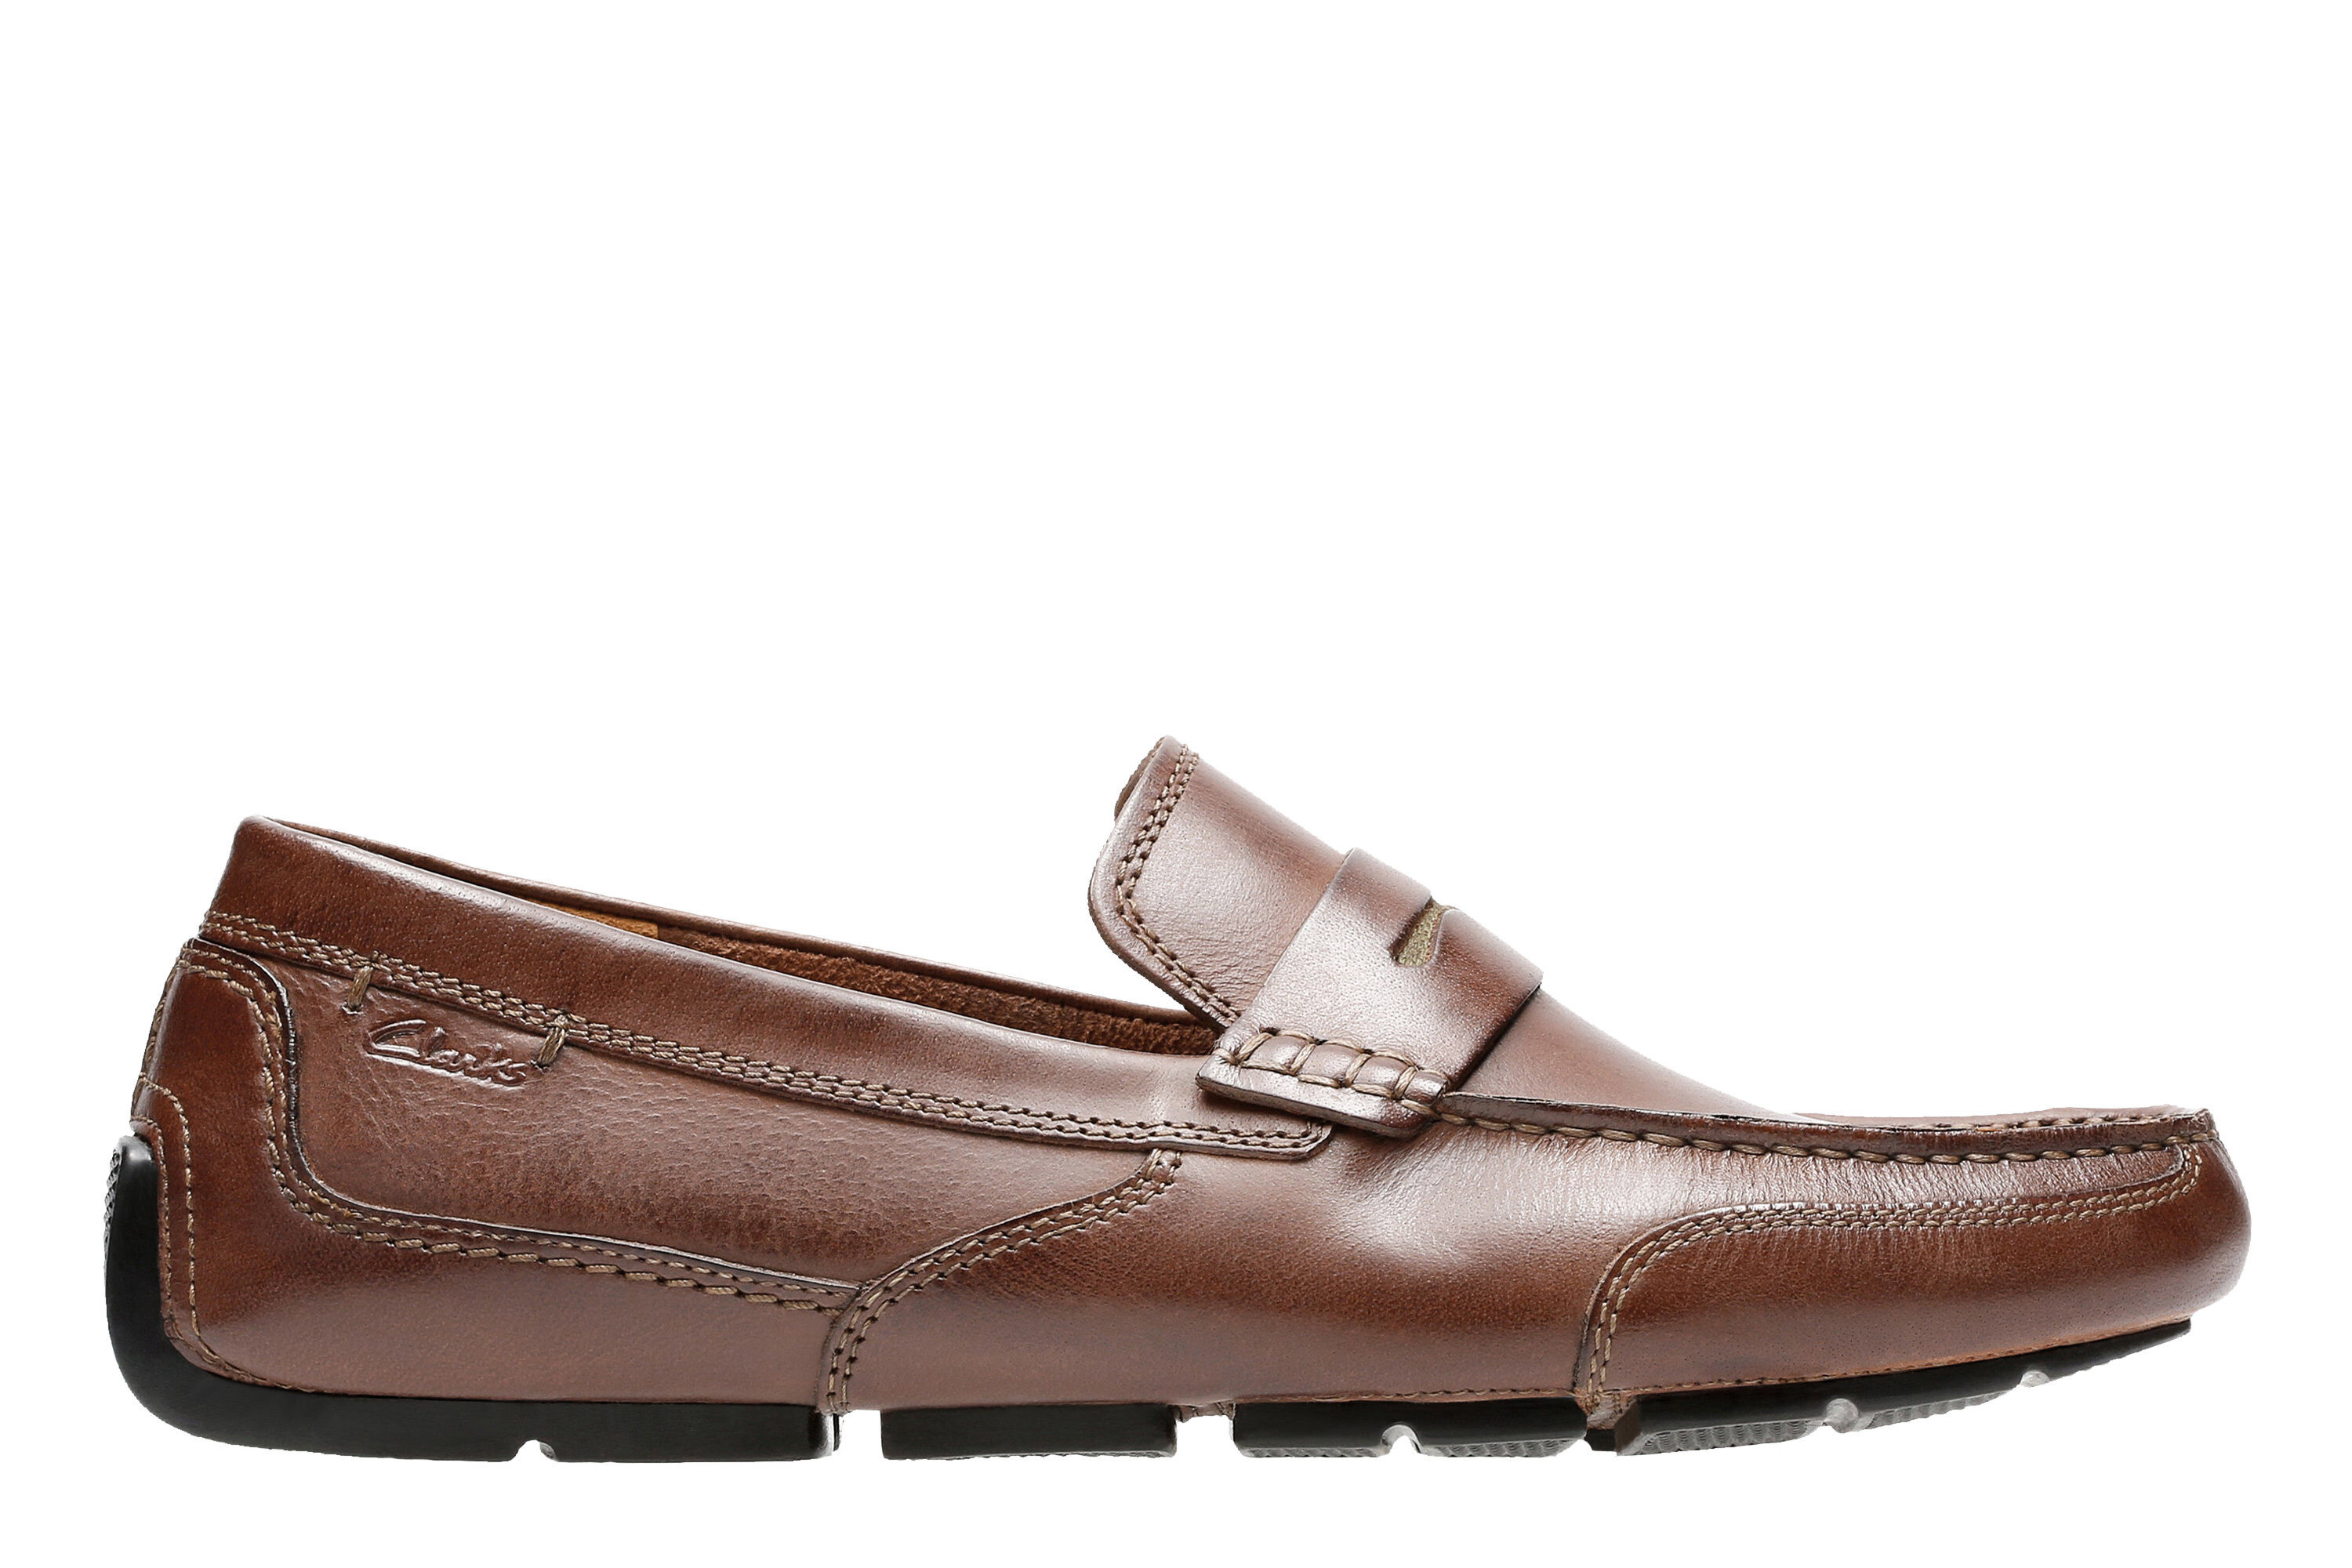 hot style Men's Clarks Ashmont Way Slip-On Shoes Cognac